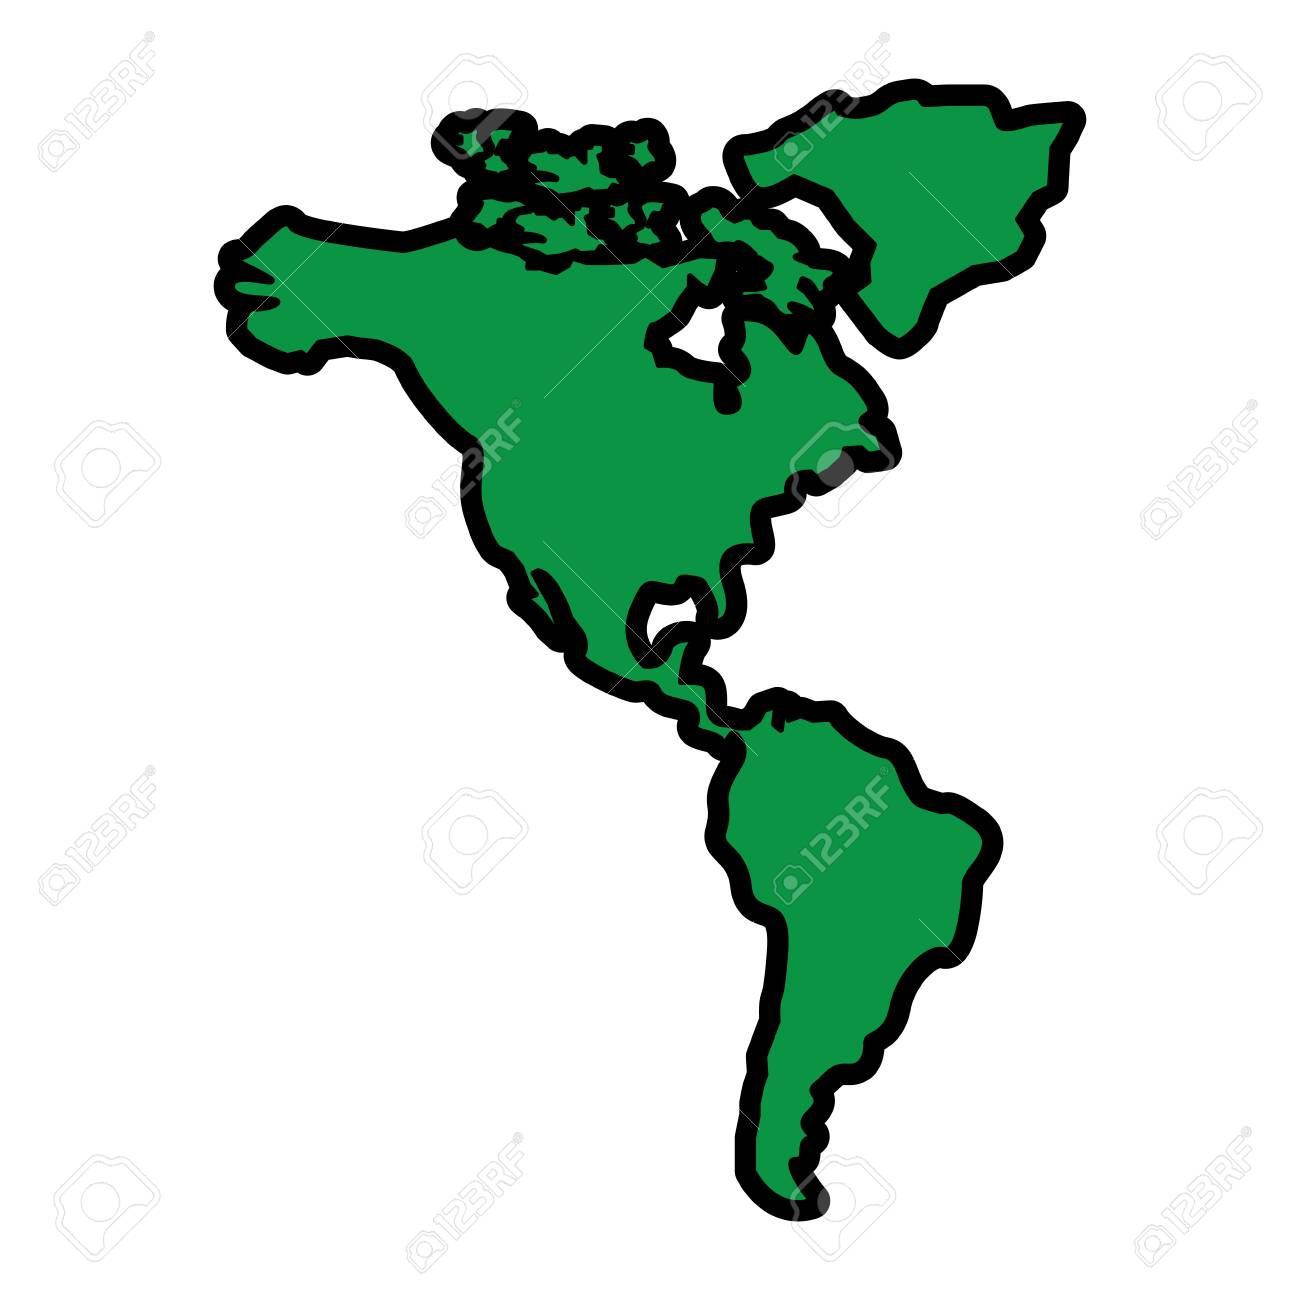 North and south america map continent vector illustration green north and south america map continent vector illustration green image stock vector 95185441 gumiabroncs Images